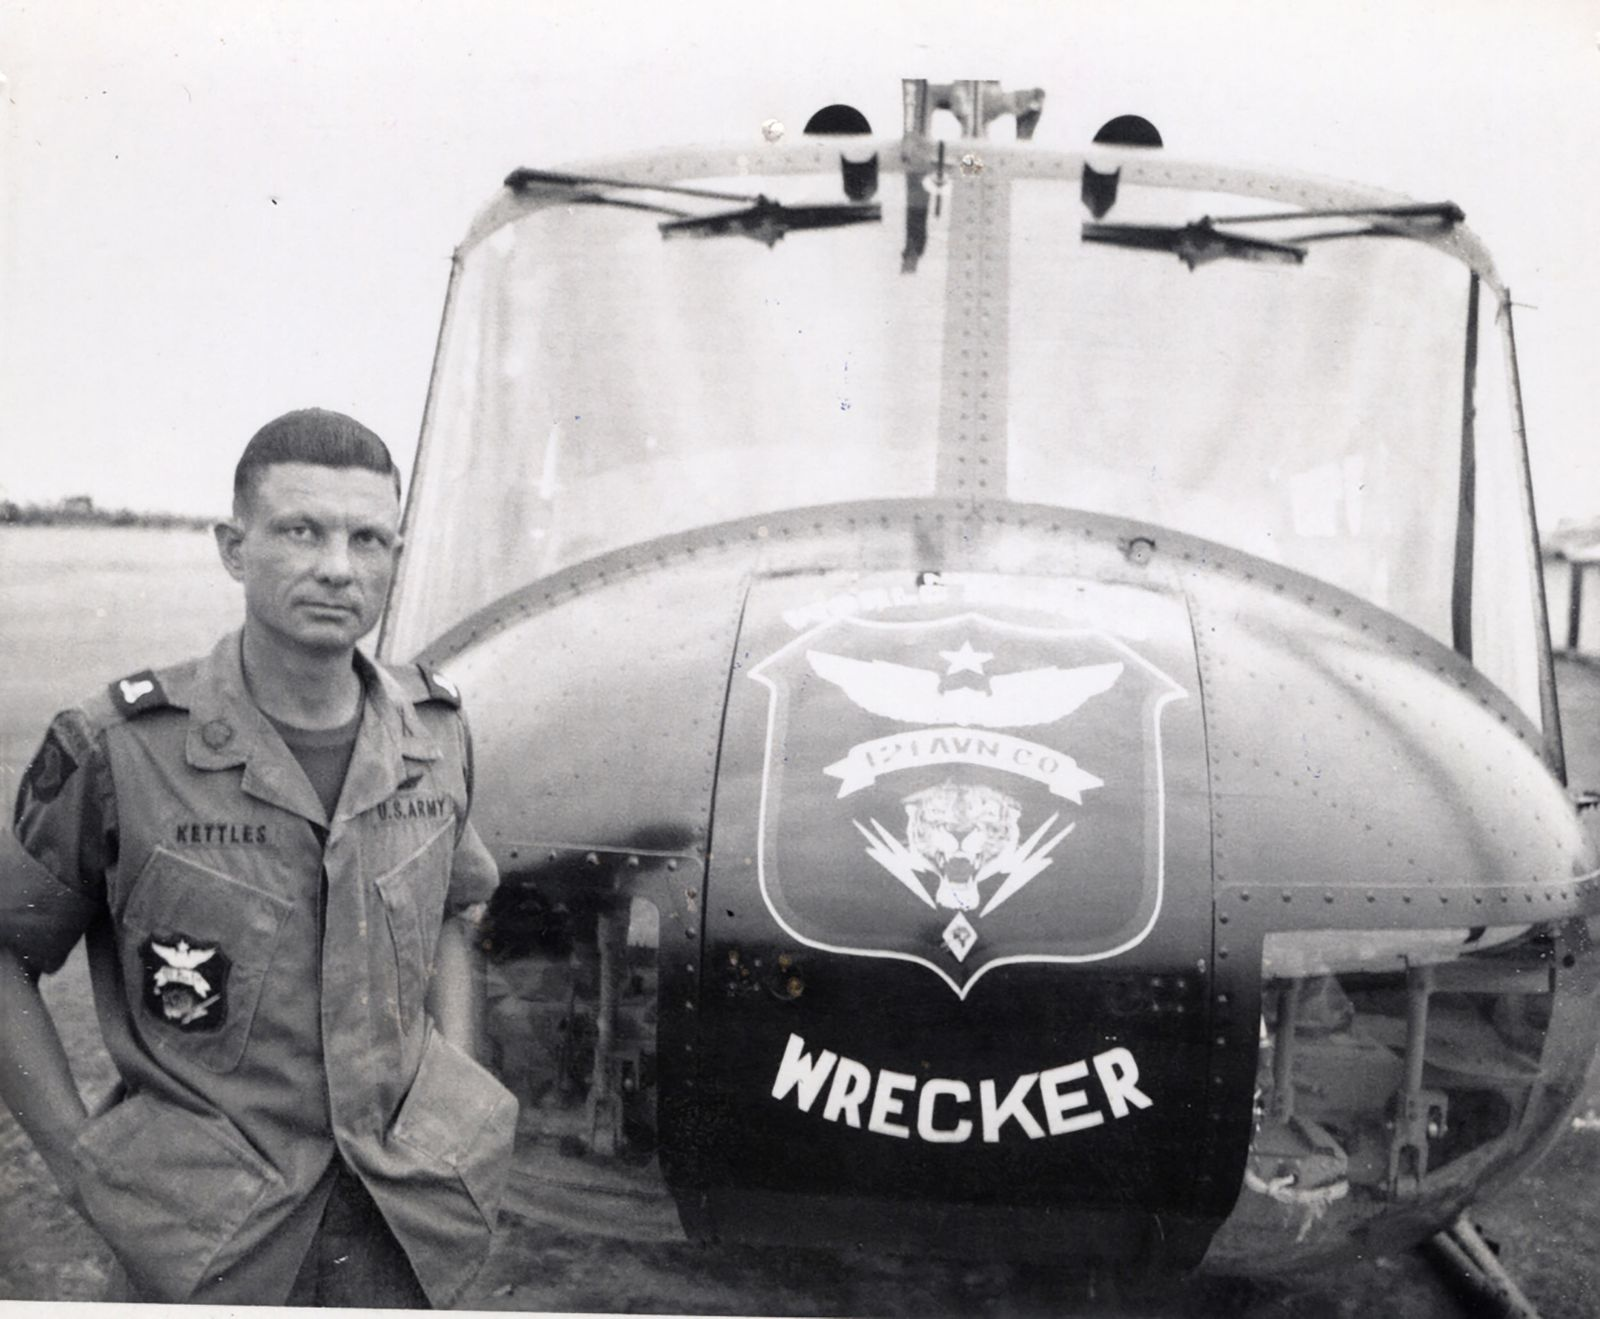 e63f6fdd12 Vietnam Helicopter Pilot Awarded Medal of Honor Almost 50 Years Later